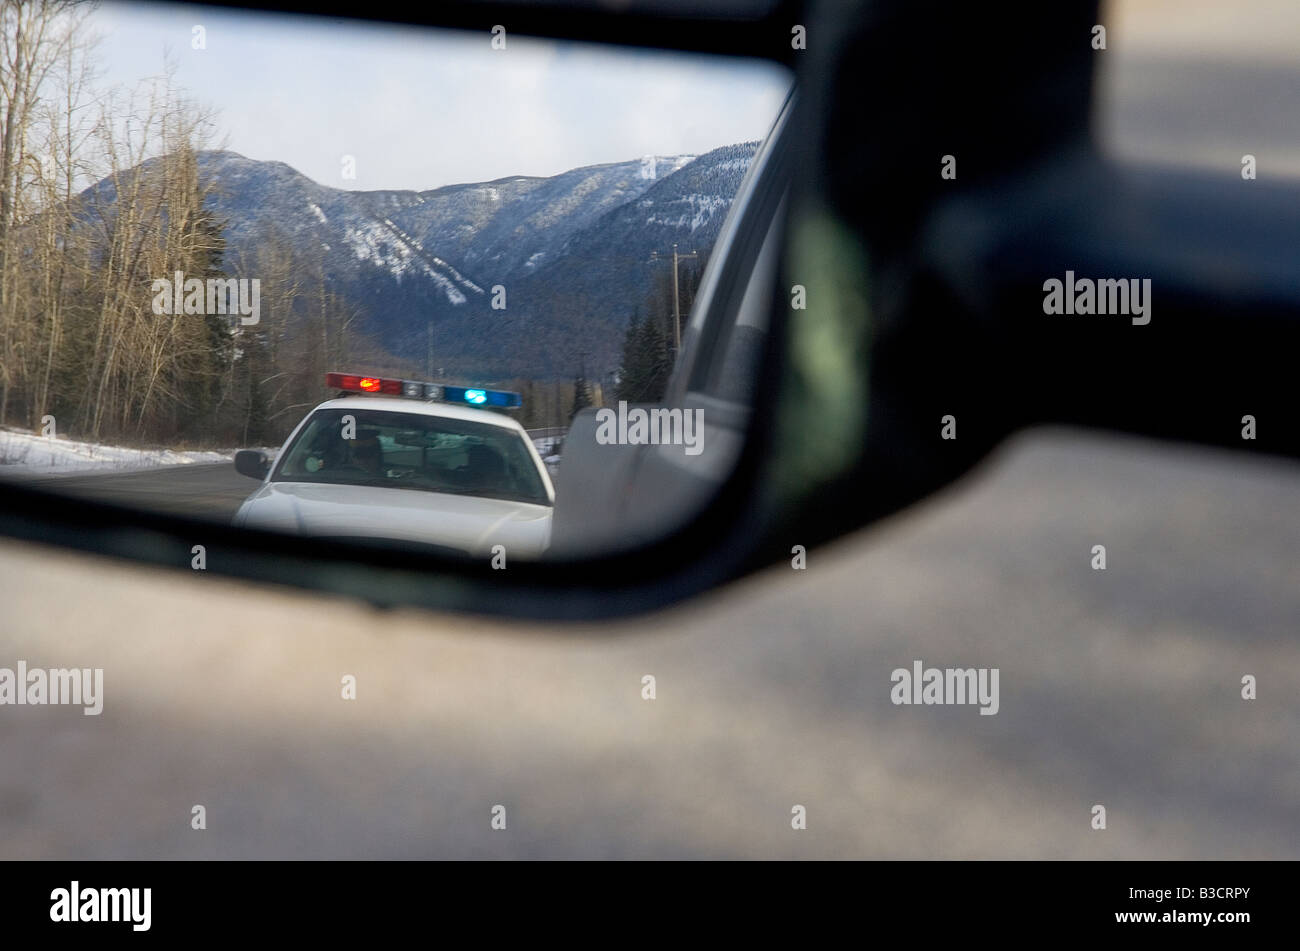 Police Car In Rearview Mirror   Stock Image